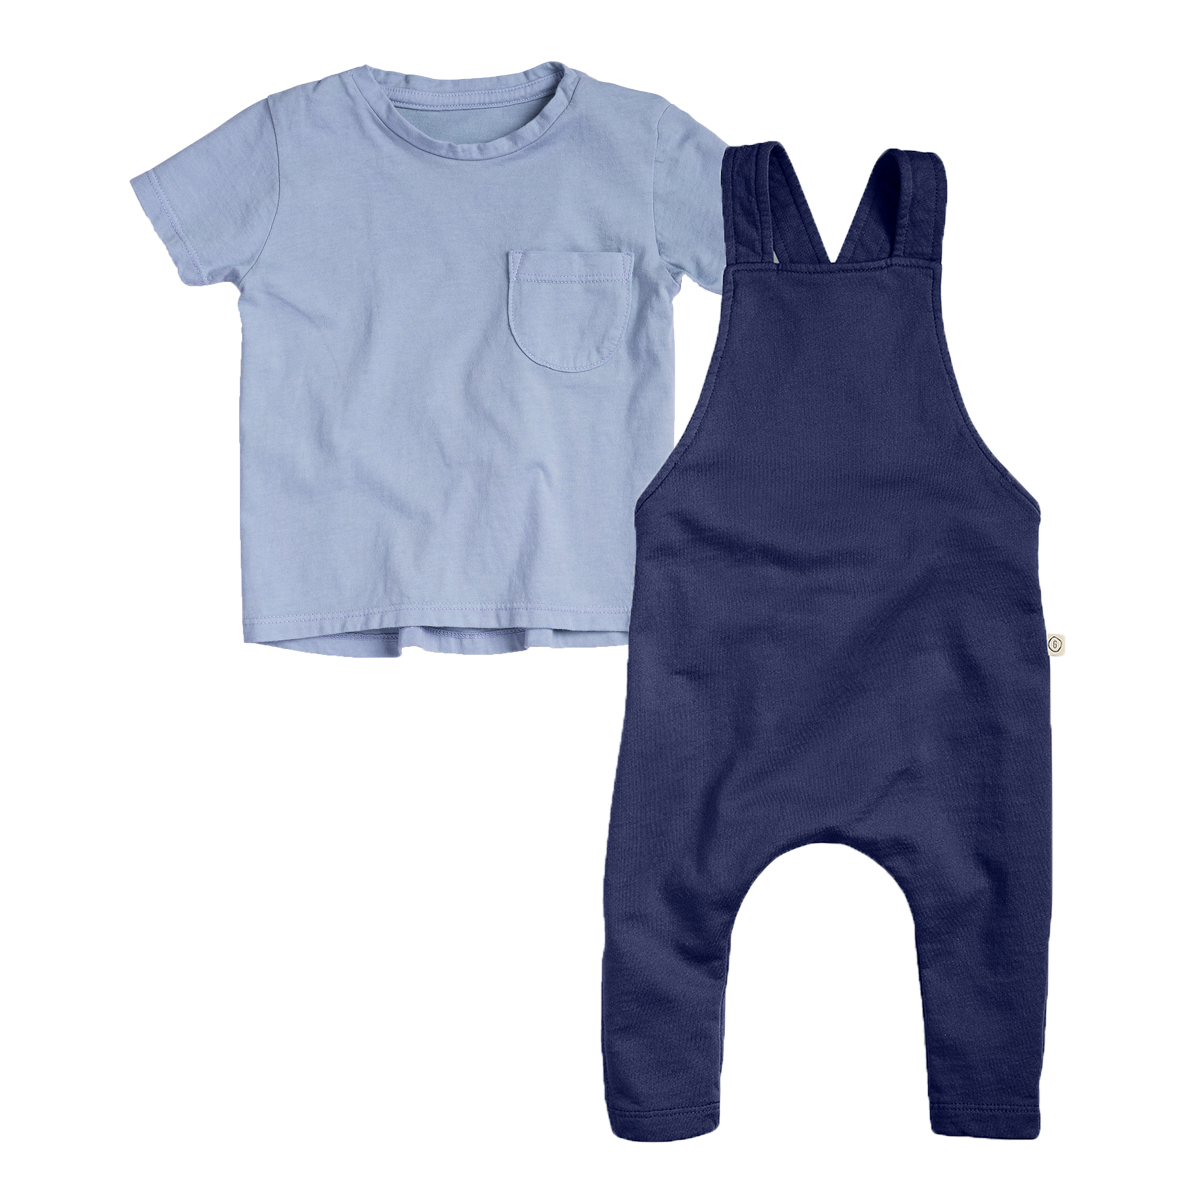 24M Infant Unisex Shoulder Snap Tee Short Sleeves Cotton Blanks Sizes 6M